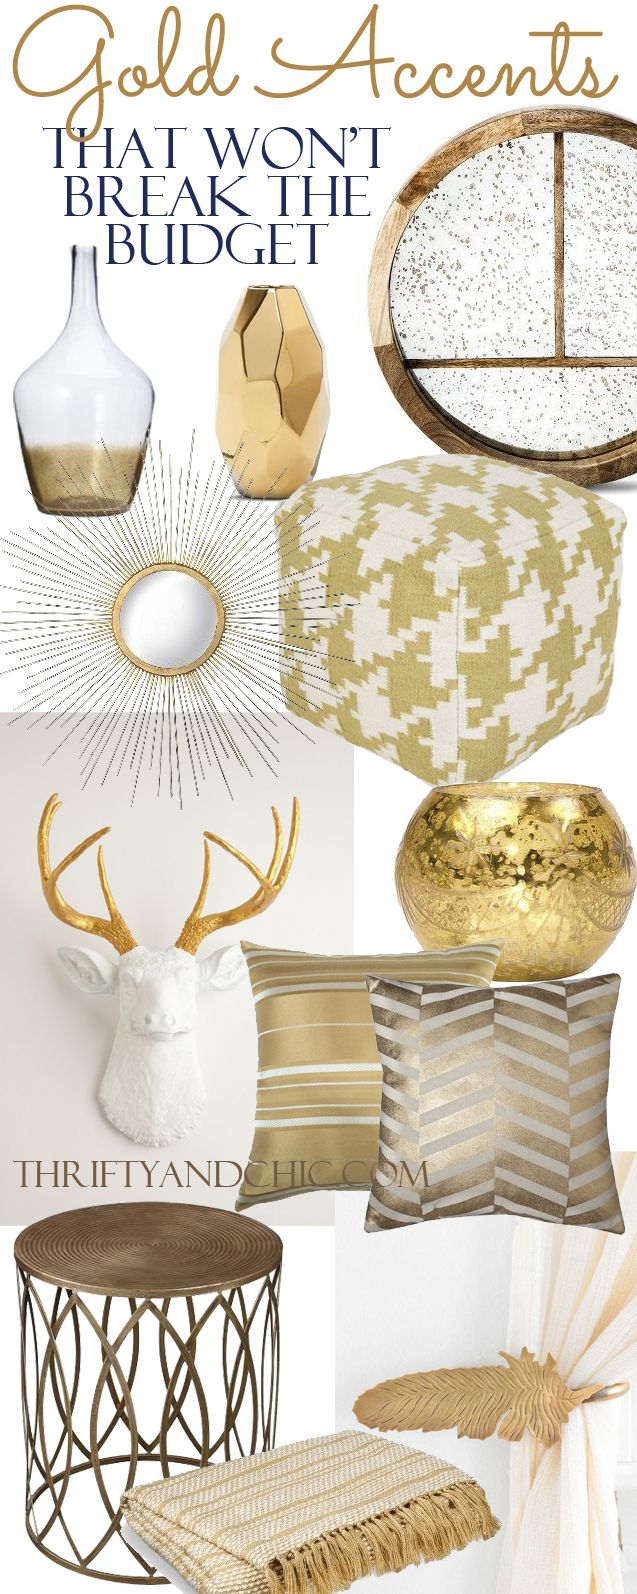 18 gold home decor pieces that wont breat the budget divided up into - Home Decor Accents